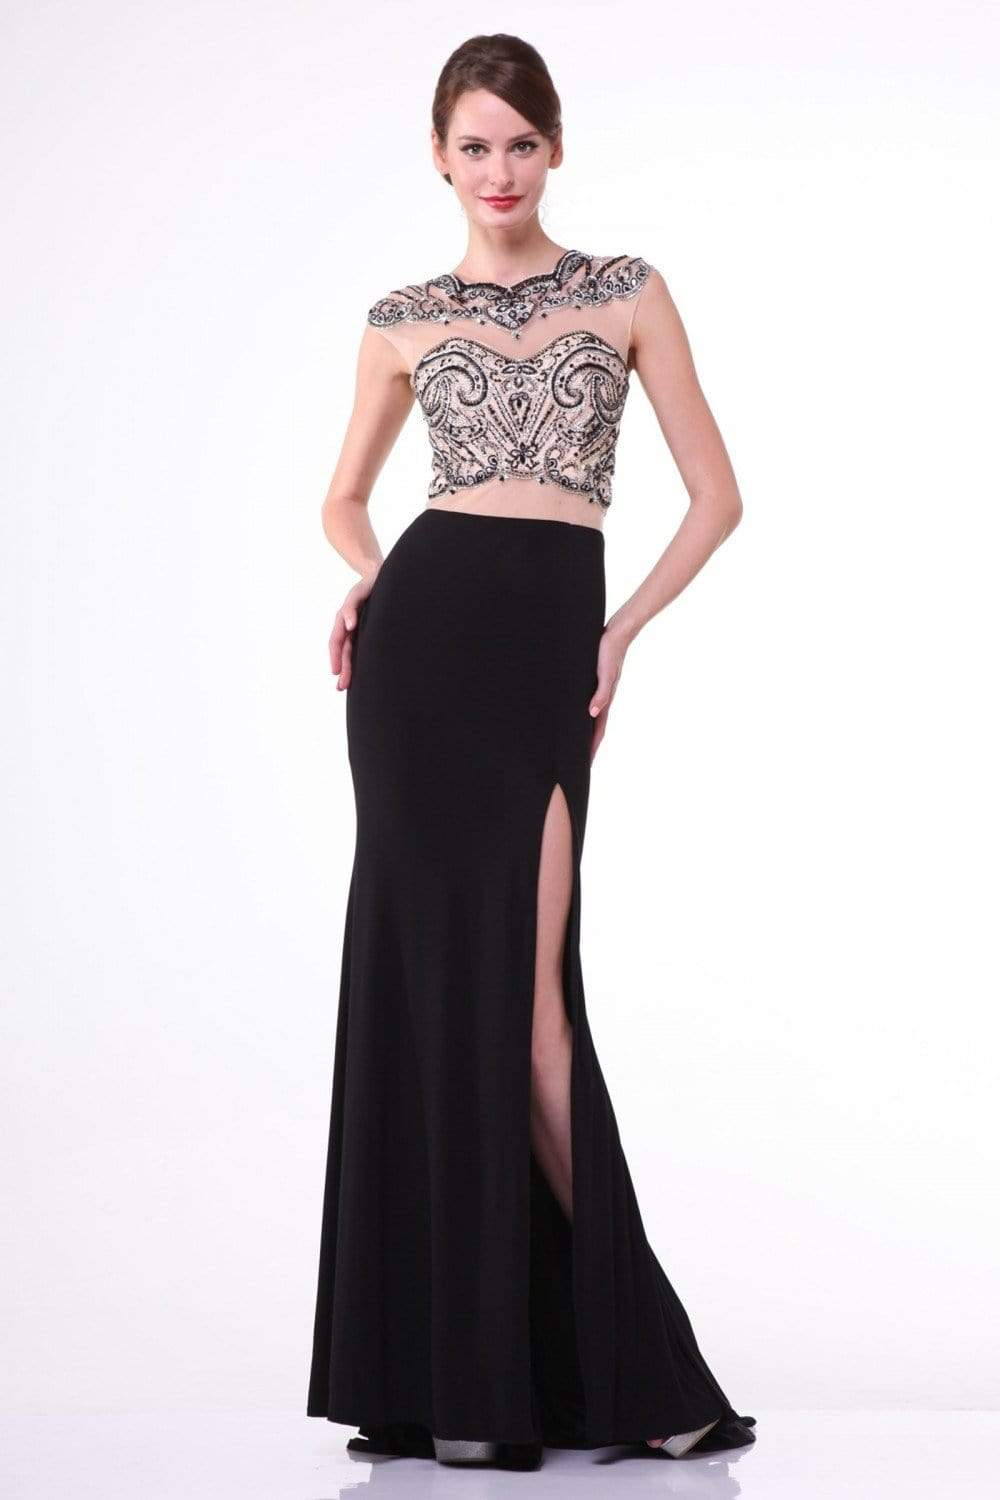 Cinderella Divine - 8786 Beaded Illusion Sheath Dress with Slit from Cinderella Divine